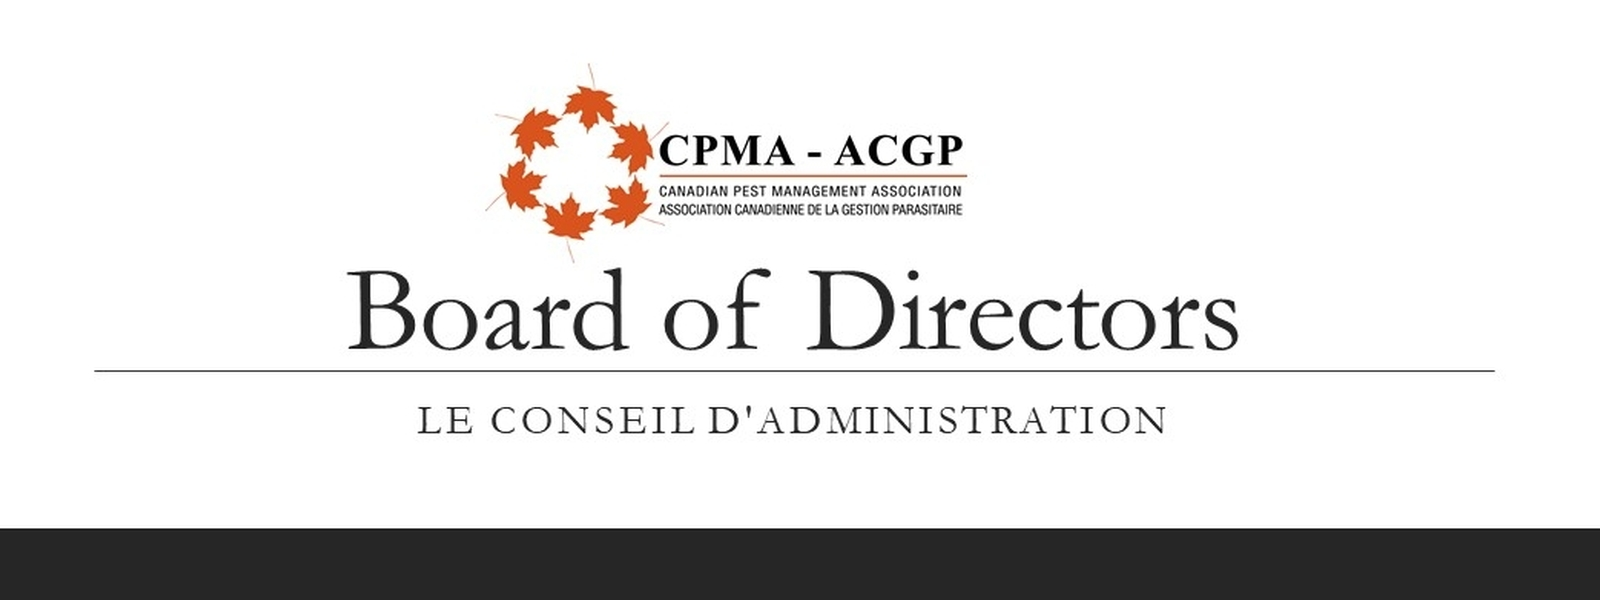 Meet the CPMA Board